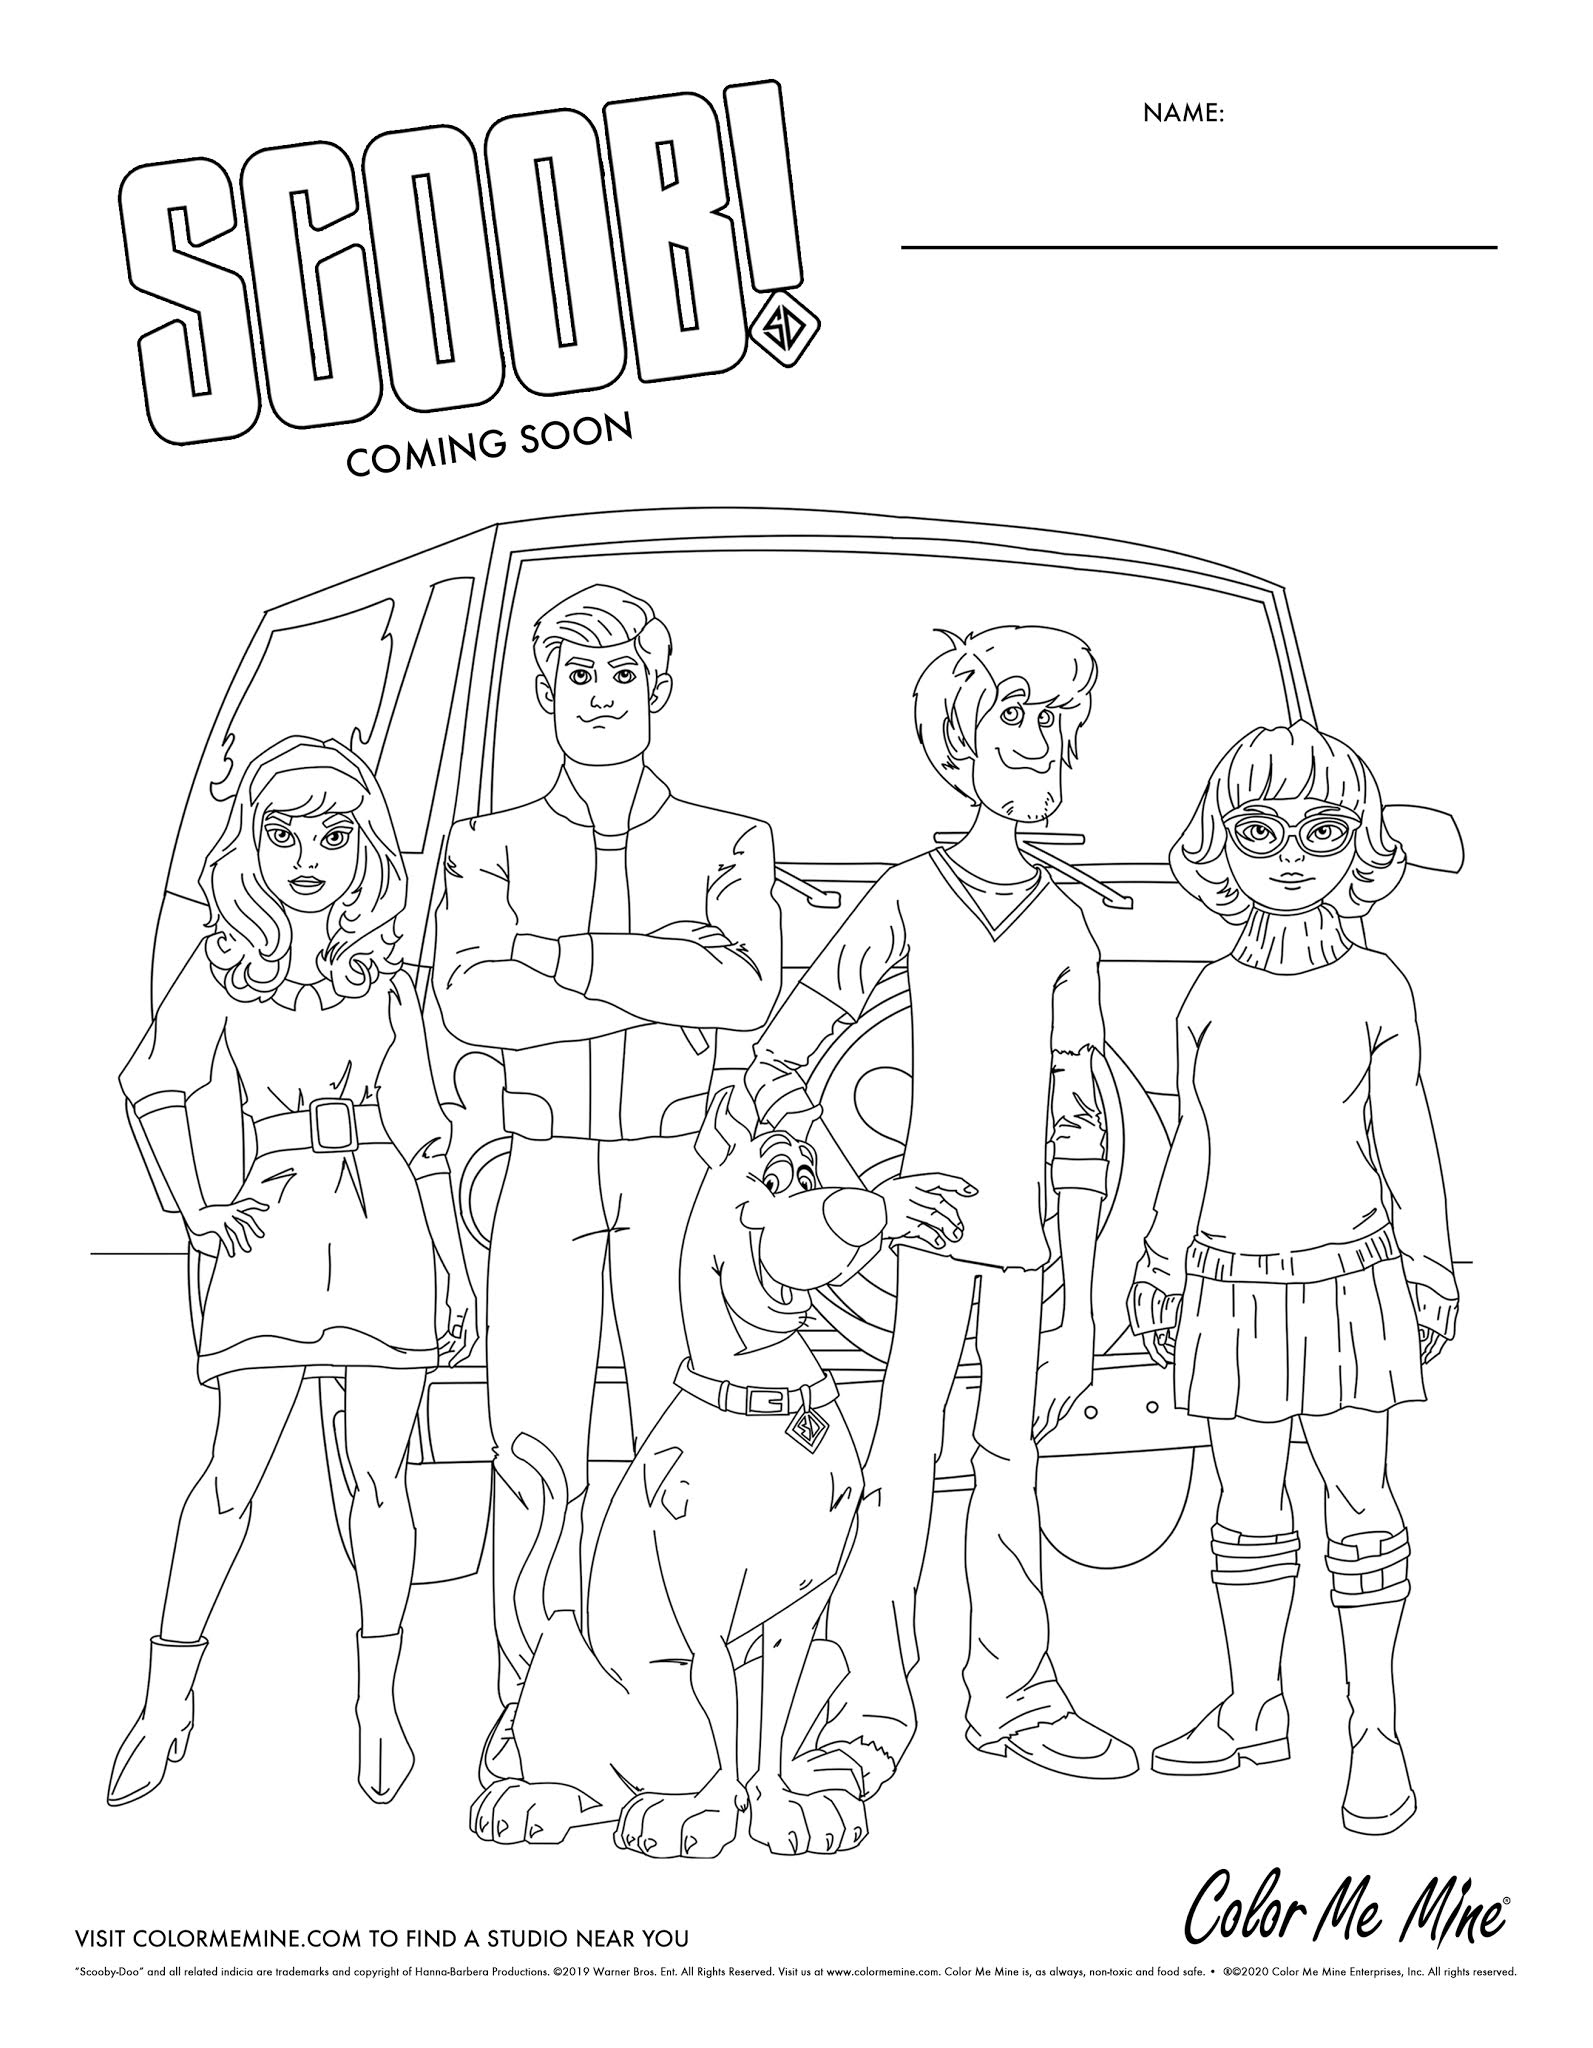 FREE SCOOB Coloring Sheets! - Red Deer